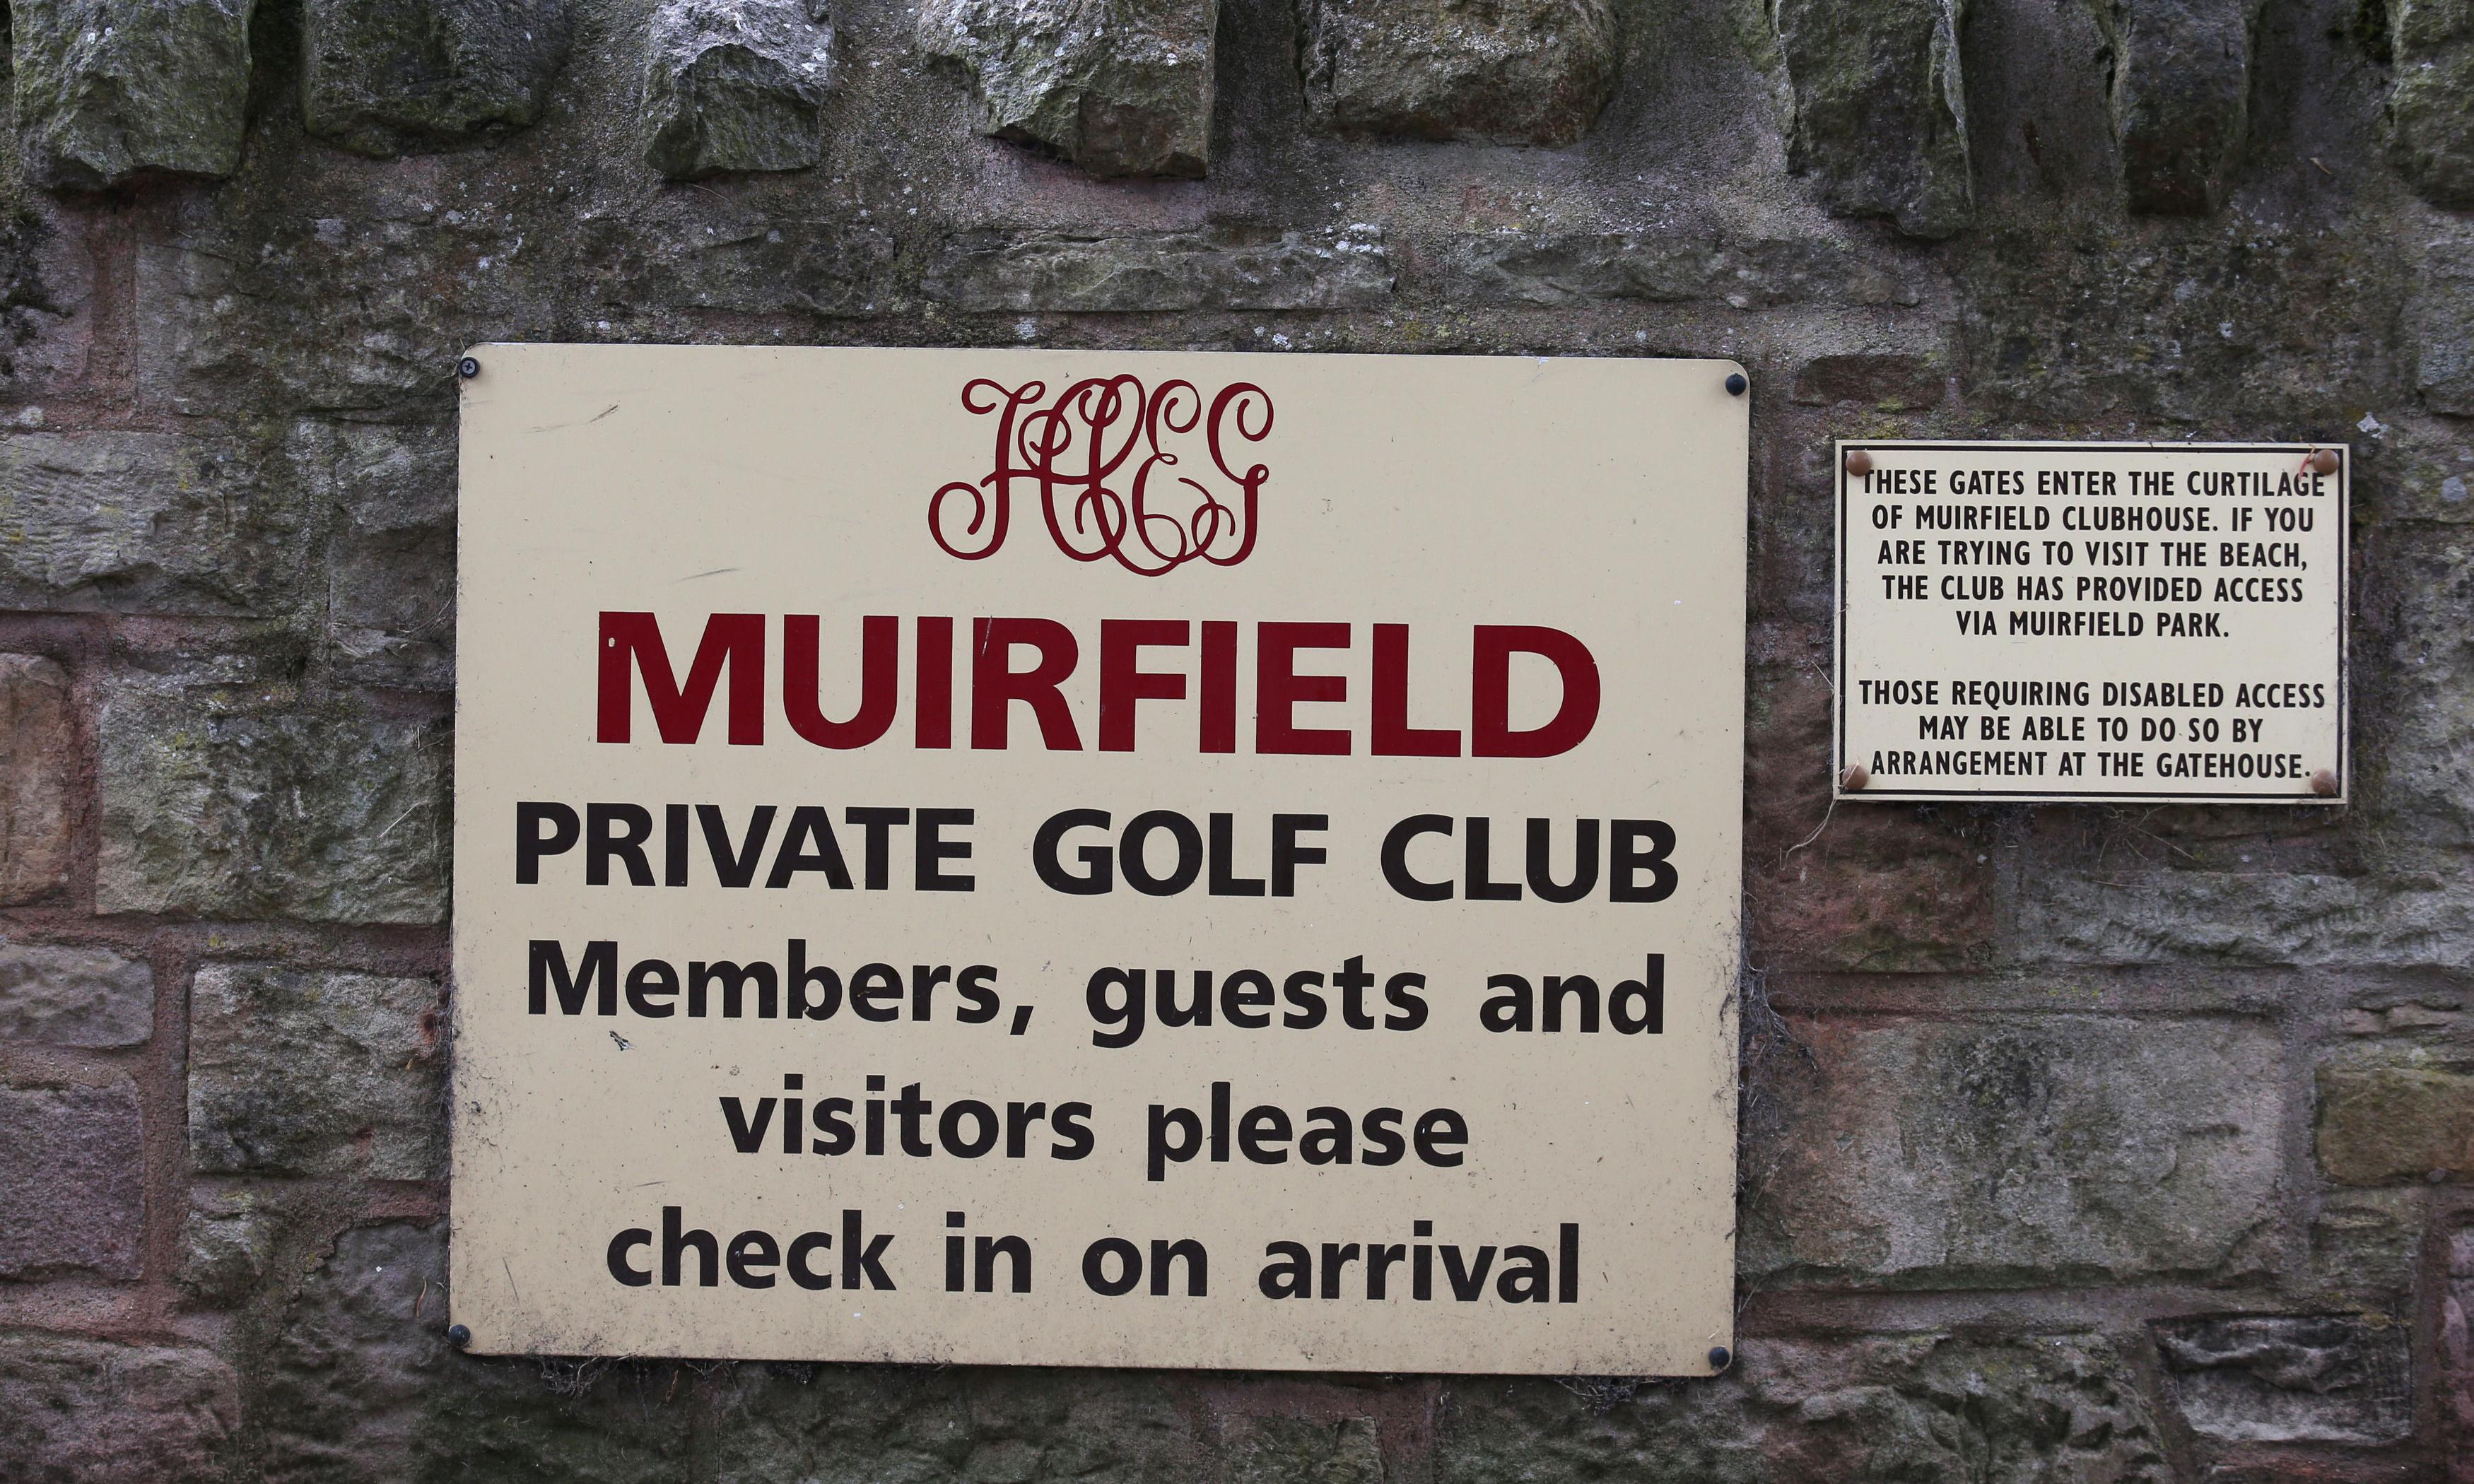 Muirfield golf club invite women to join for first time in 275-year history